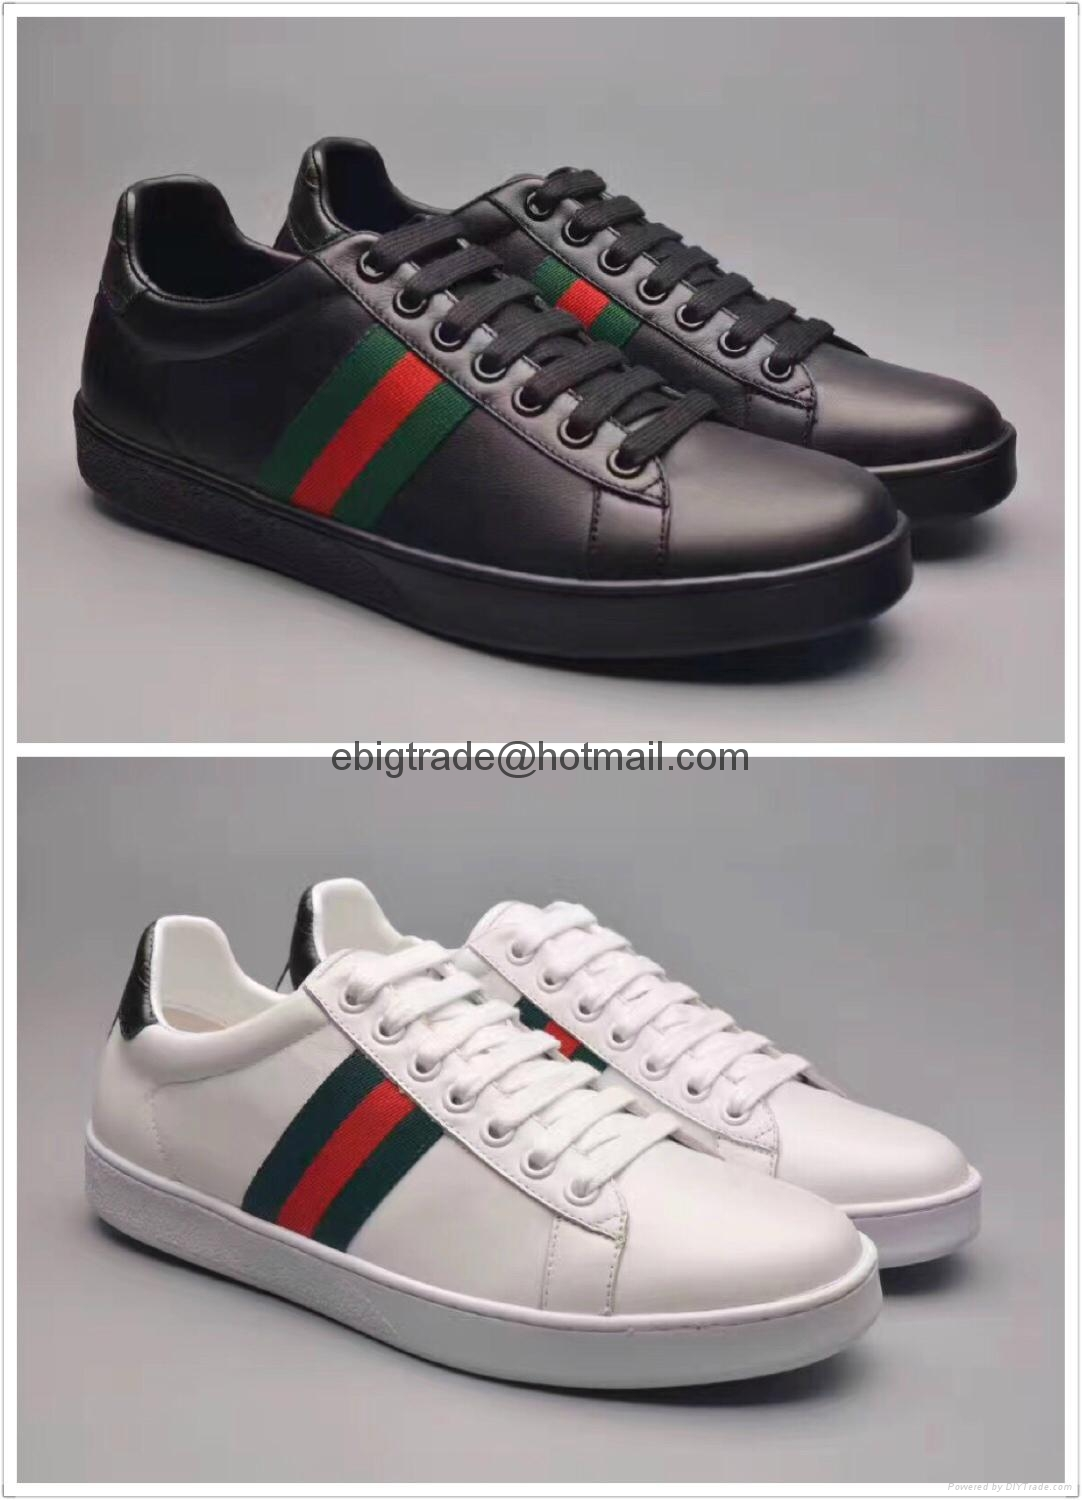 Cheap Gucci shoes for men Gucci sneakers for men replica Gucci shoes on sale  1